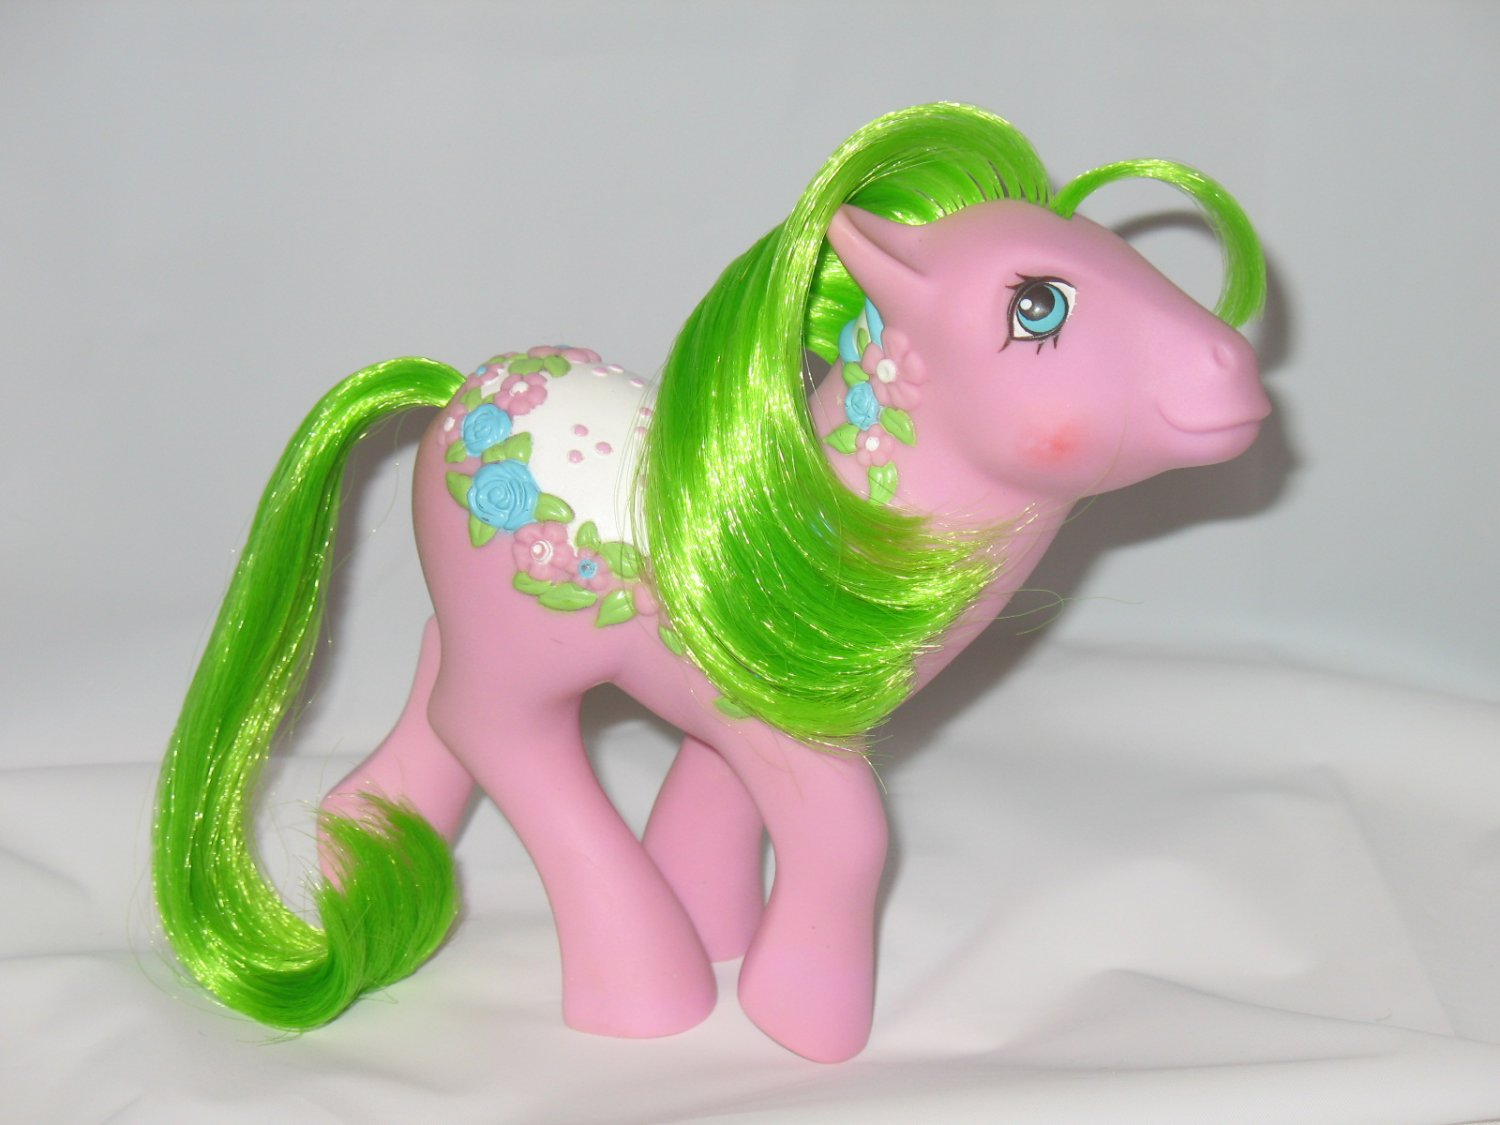 My Little Pony Merry Go Round Sunnybunch